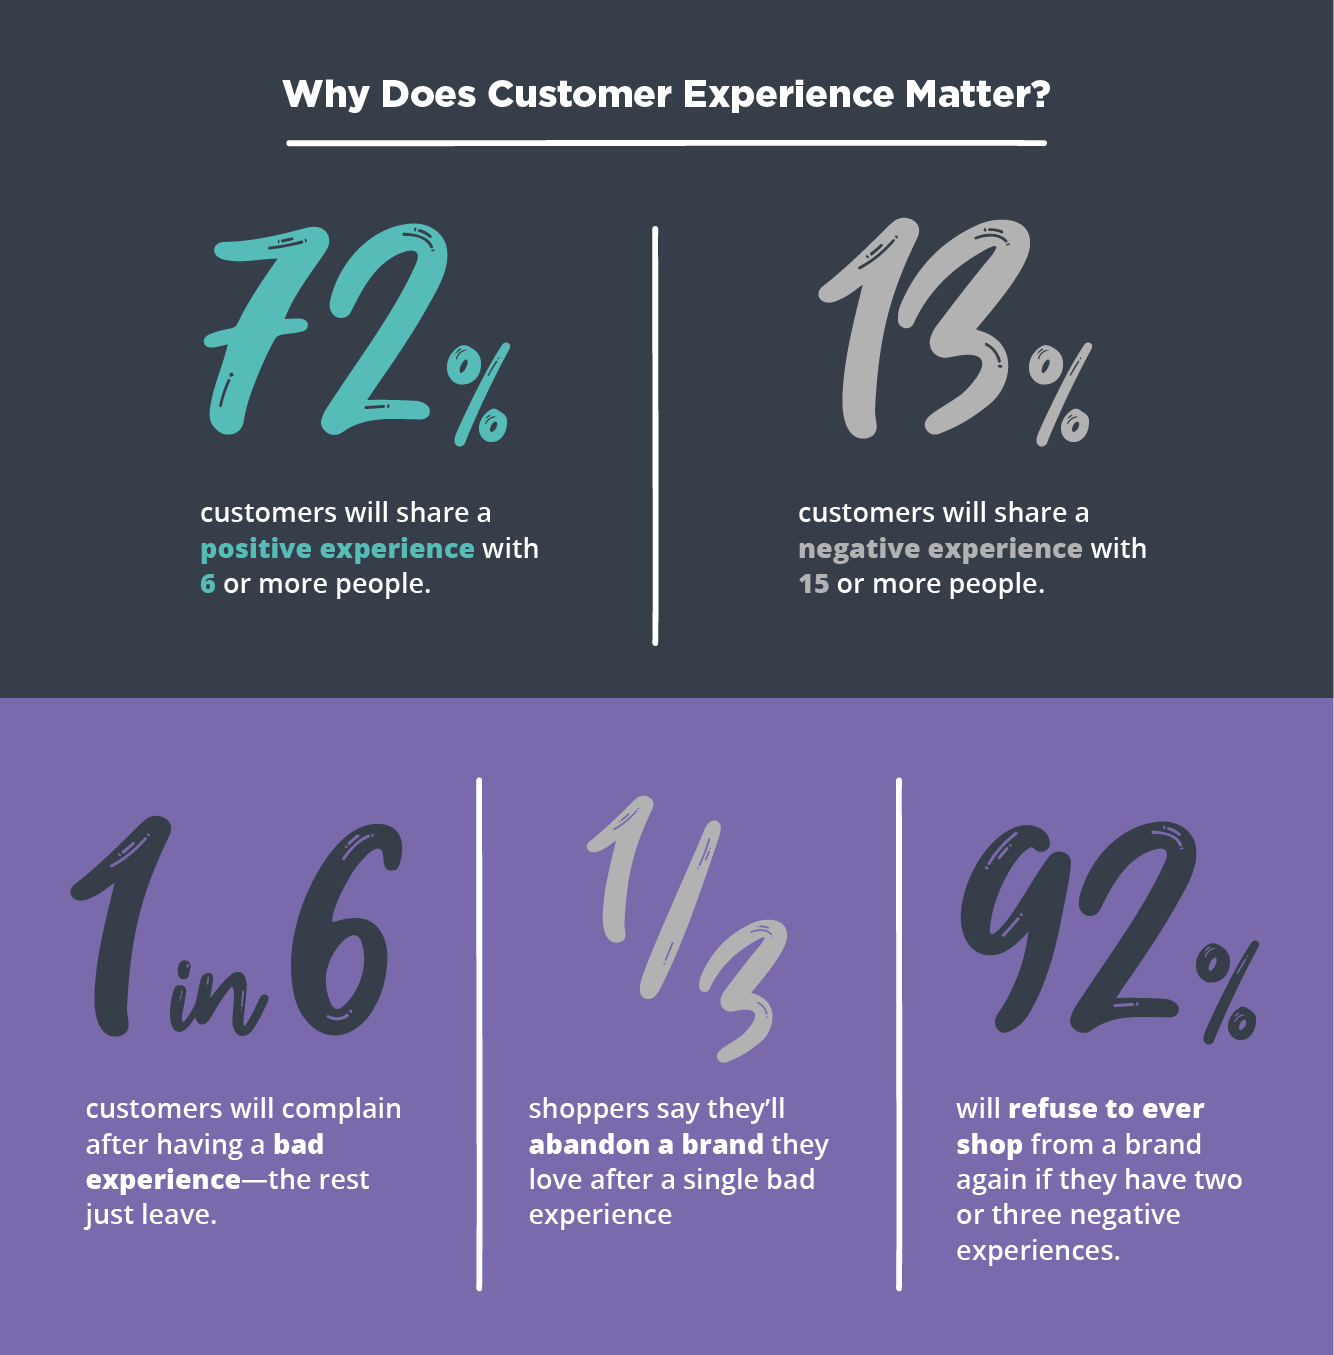 Why Does Customer Experience Matter?